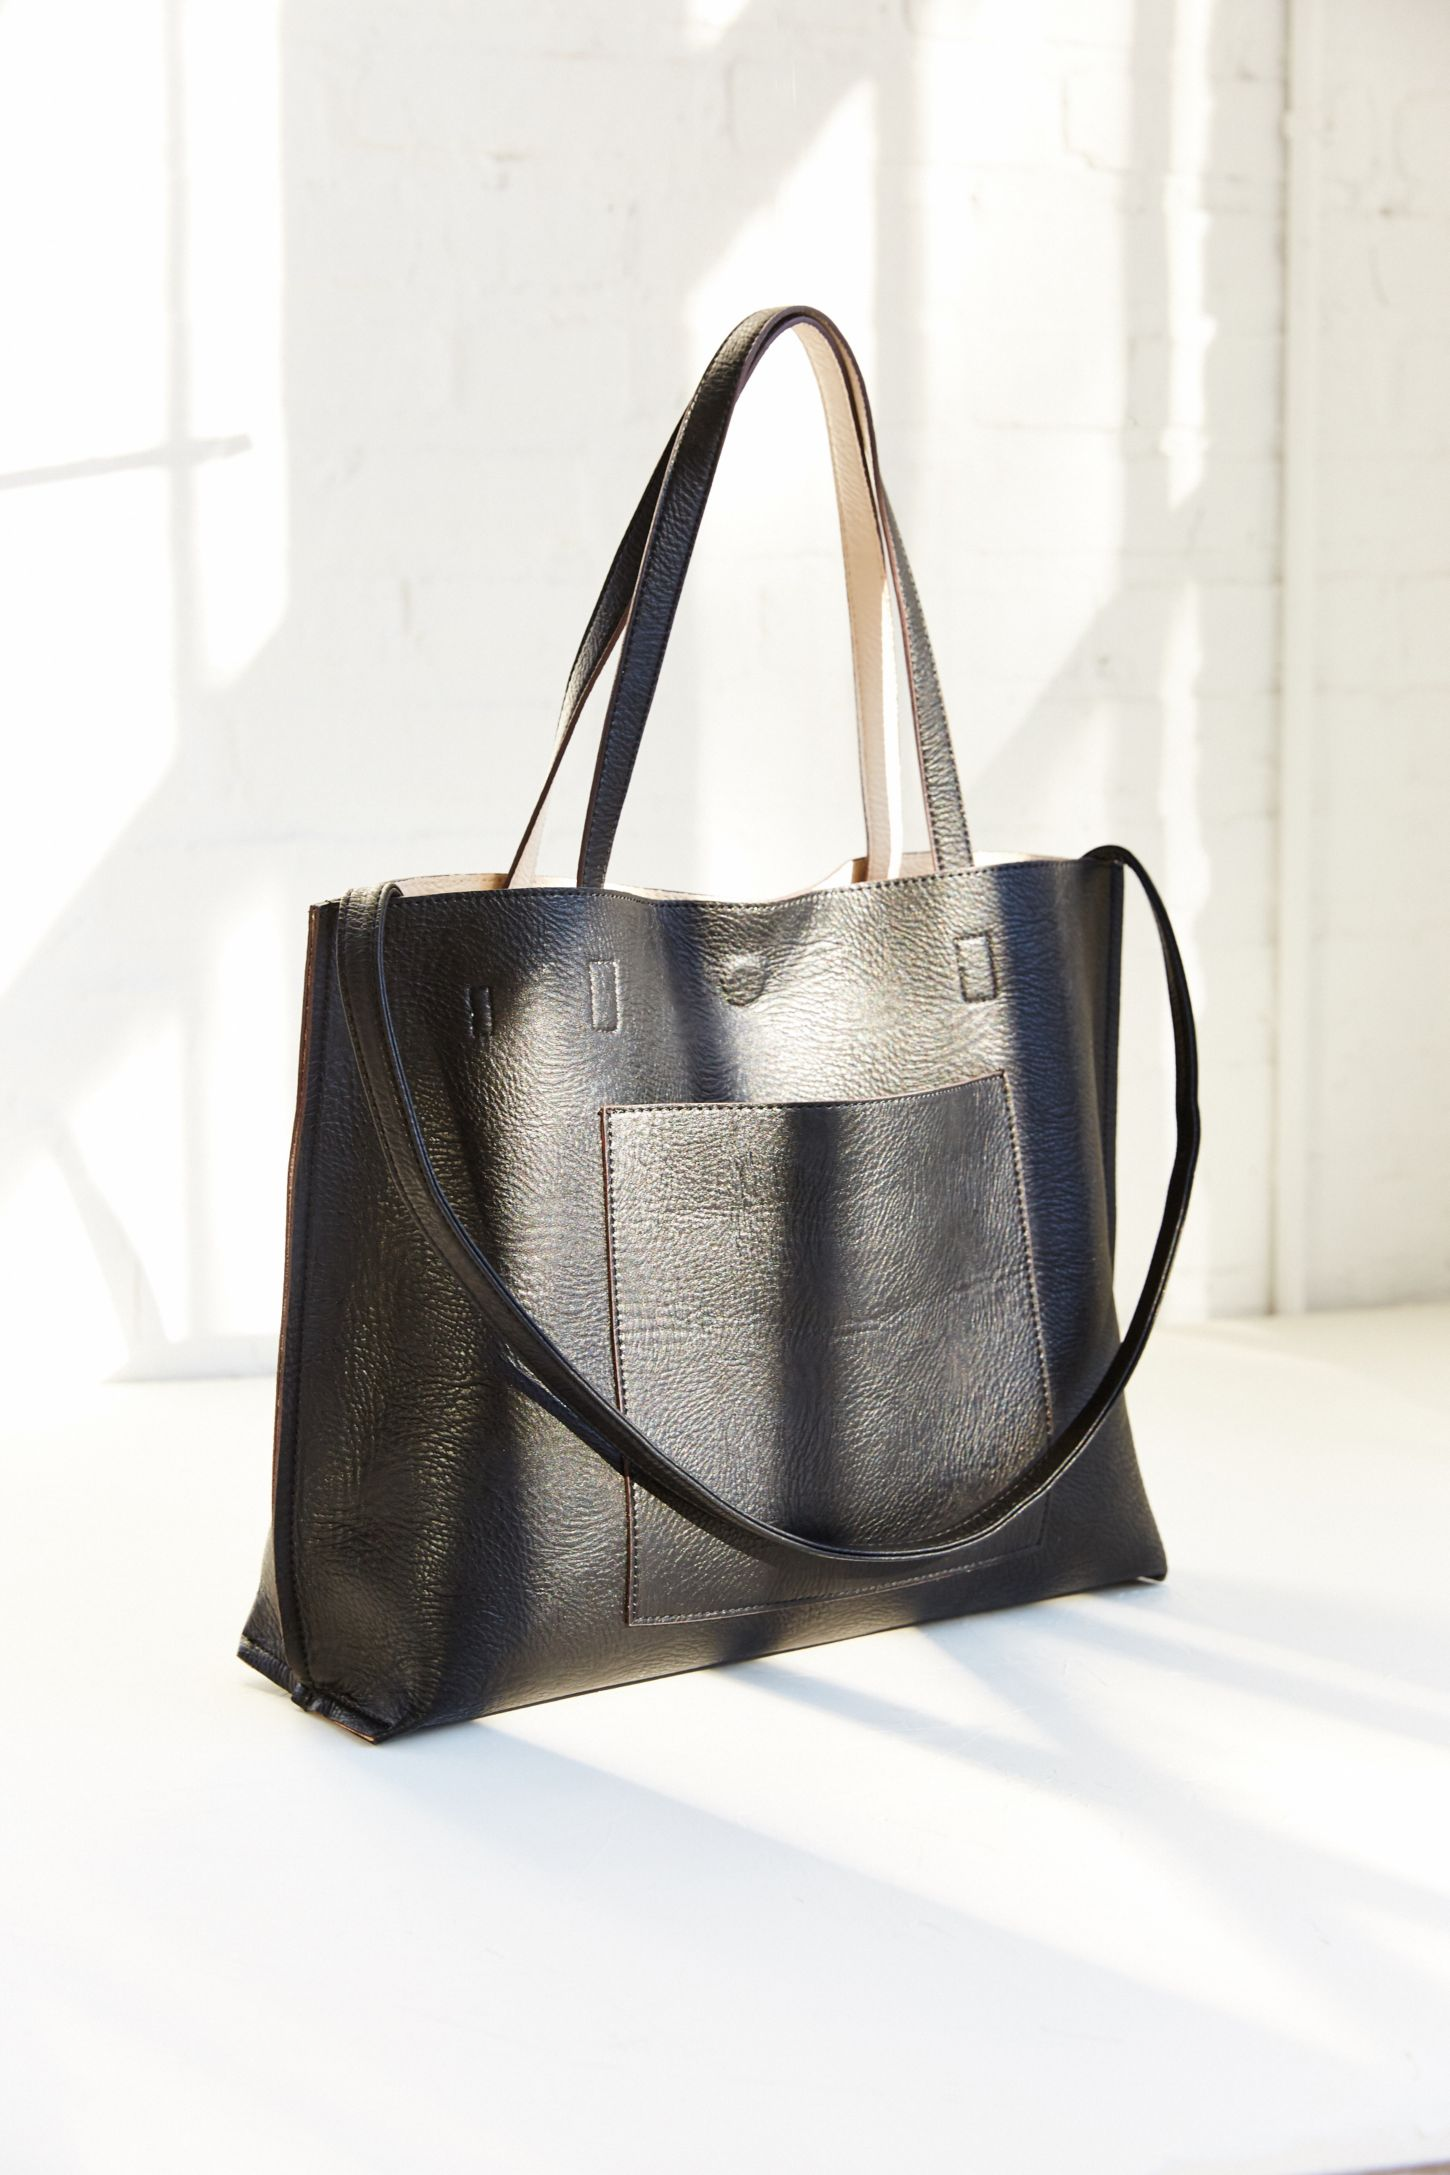 Silver leather tote bag uk - Silver Leather Tote Bag Uk 40